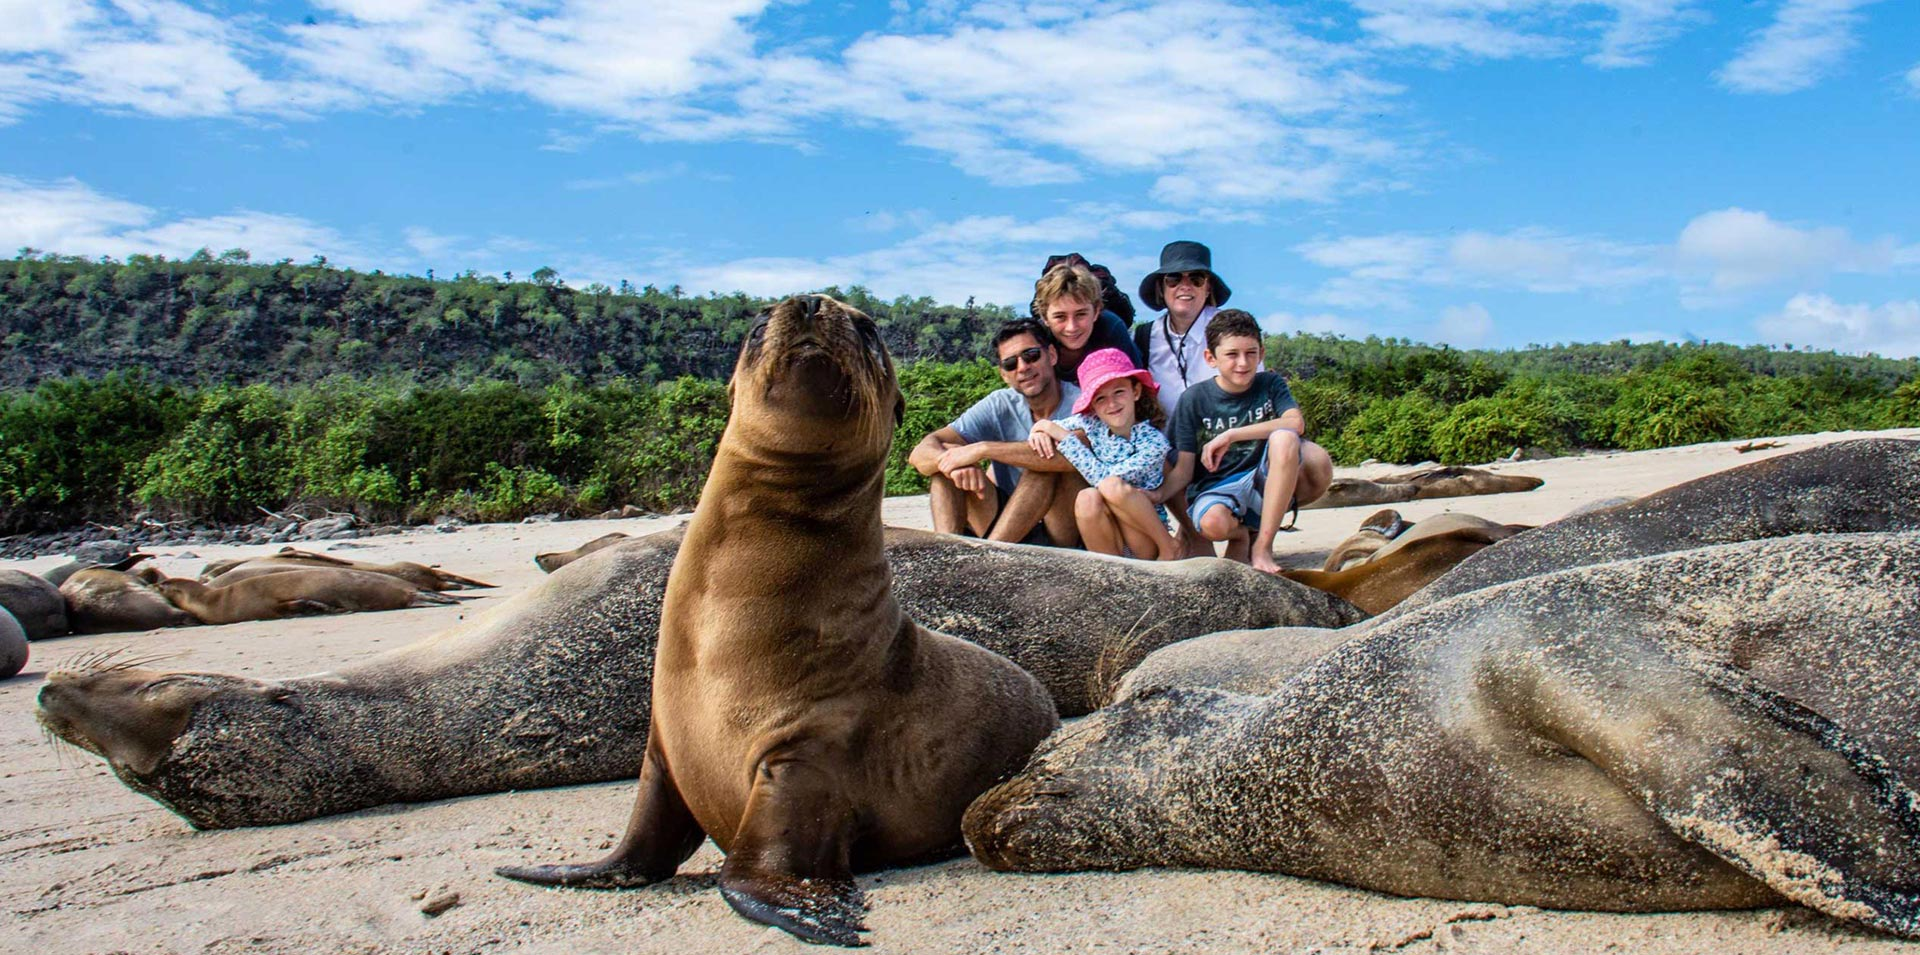 Family enjoying their tour in the Galapagos Islands